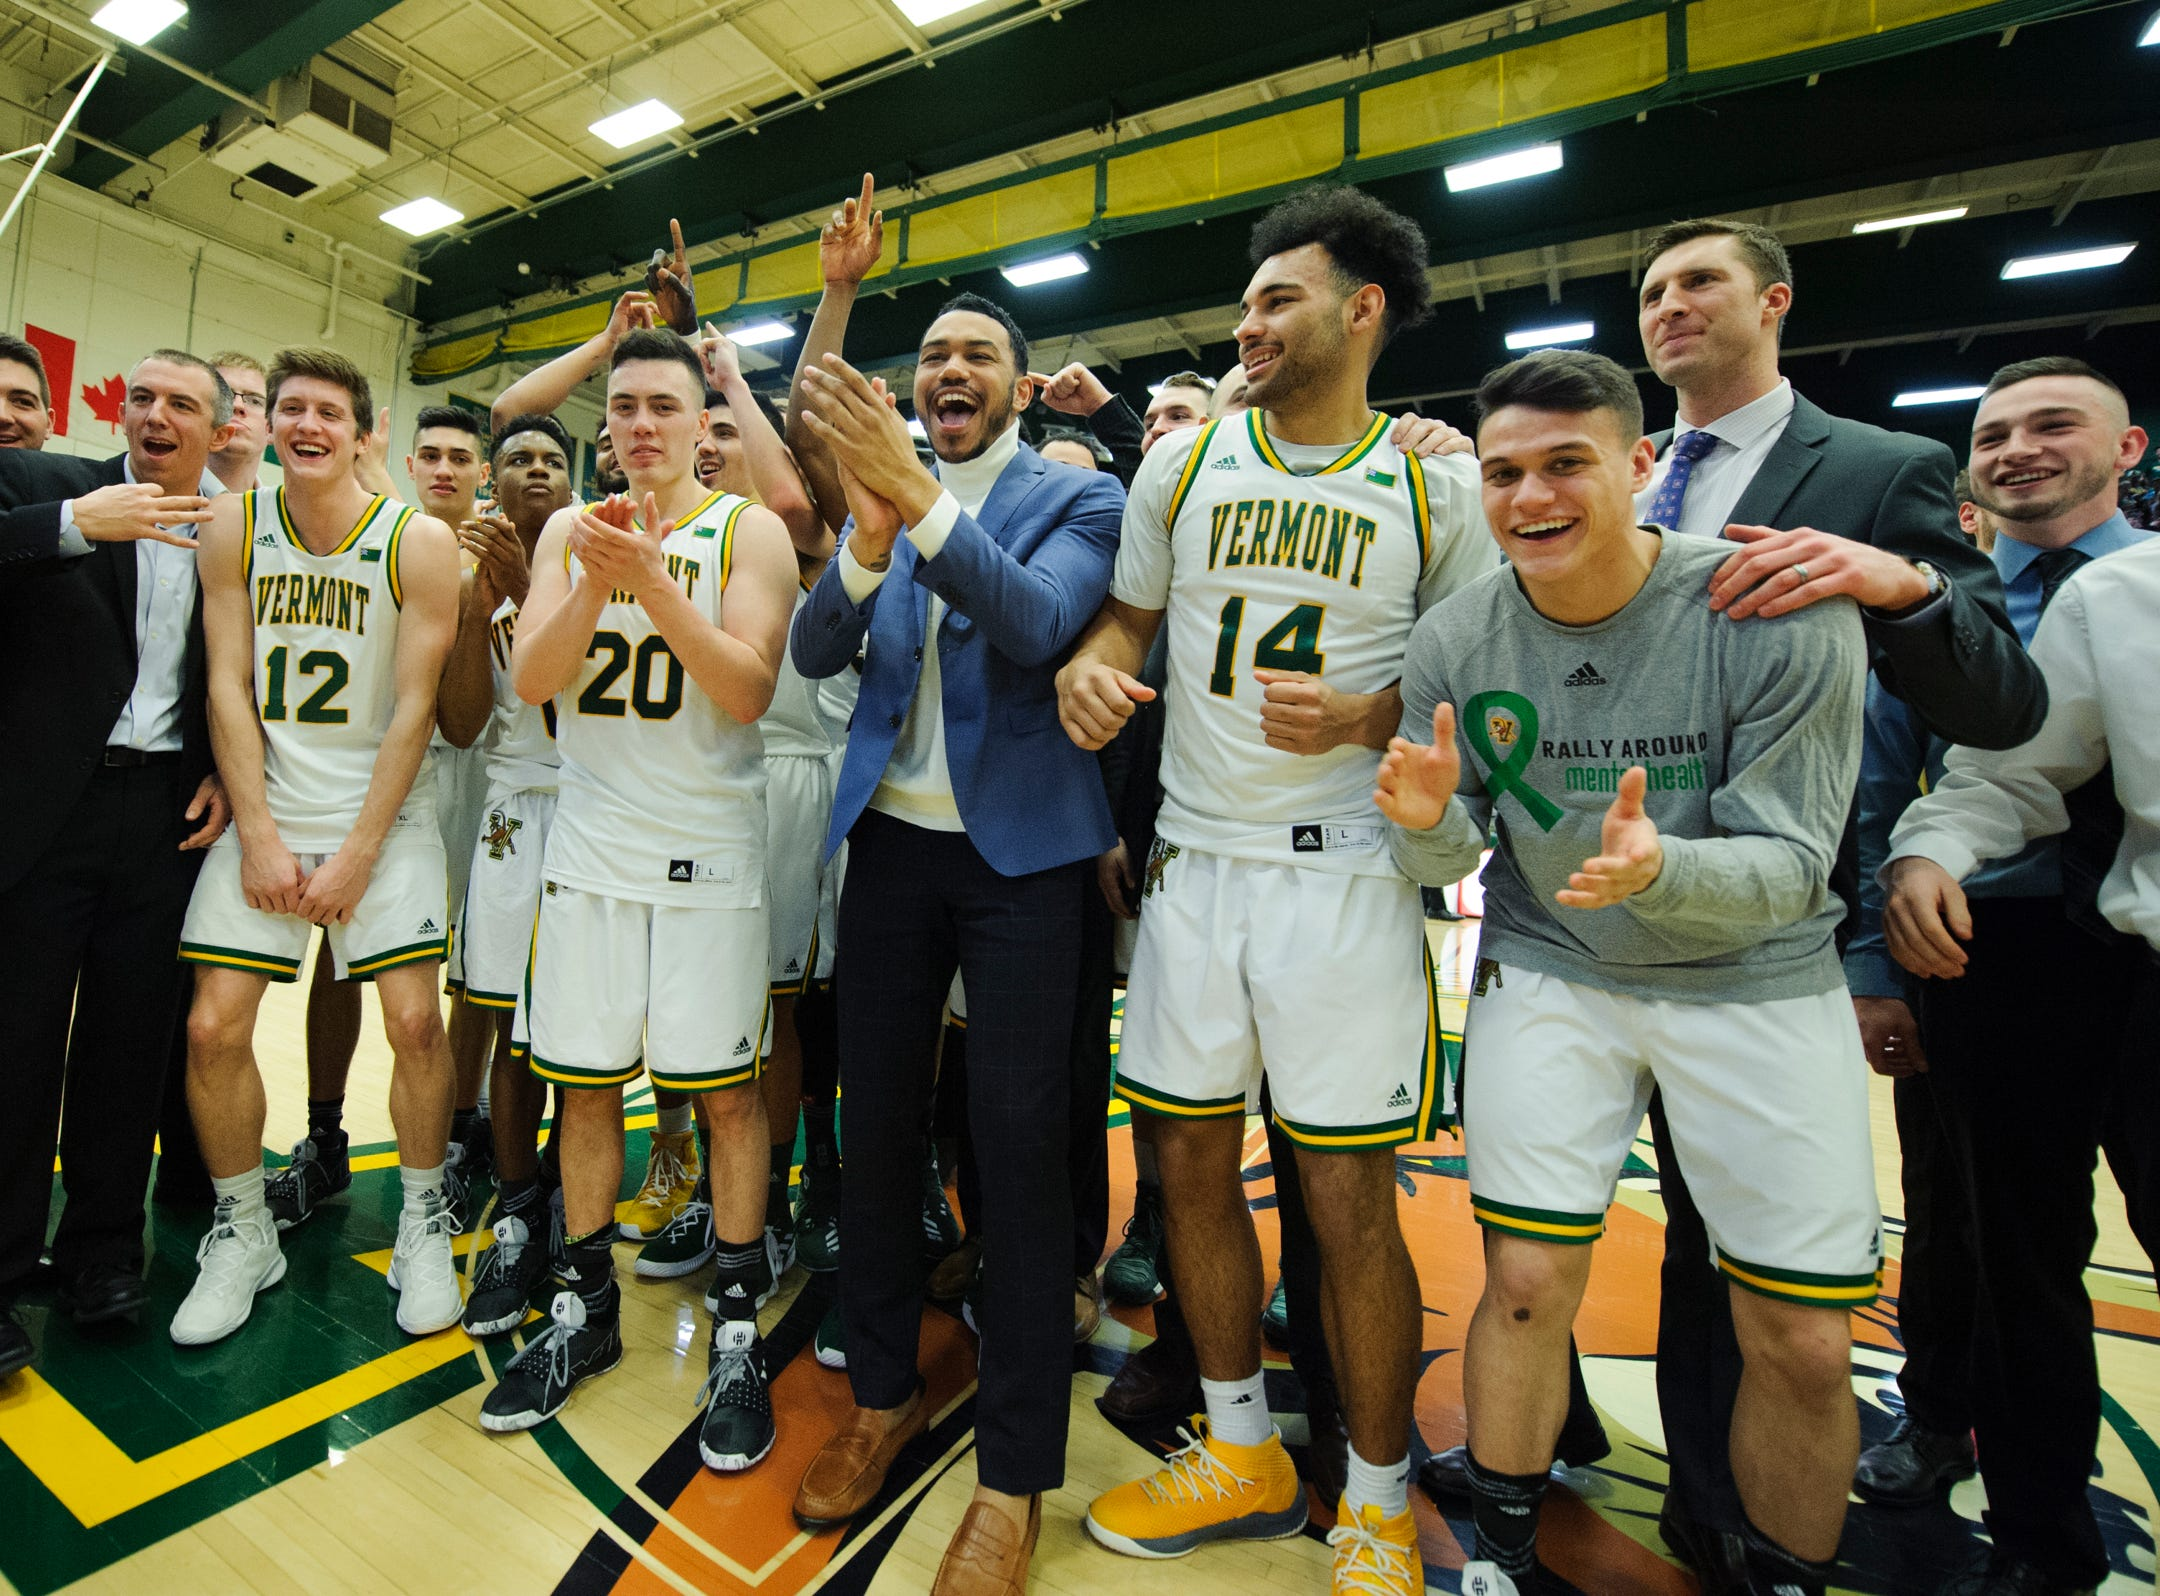 Vermont celebrates the American East regular season championship during the men's basketball game between the Stony Brook Seawolves and the Vermont Catamounts at Patrick Gym on Saturday night March 2, 2019 in Burlington, Vermont.